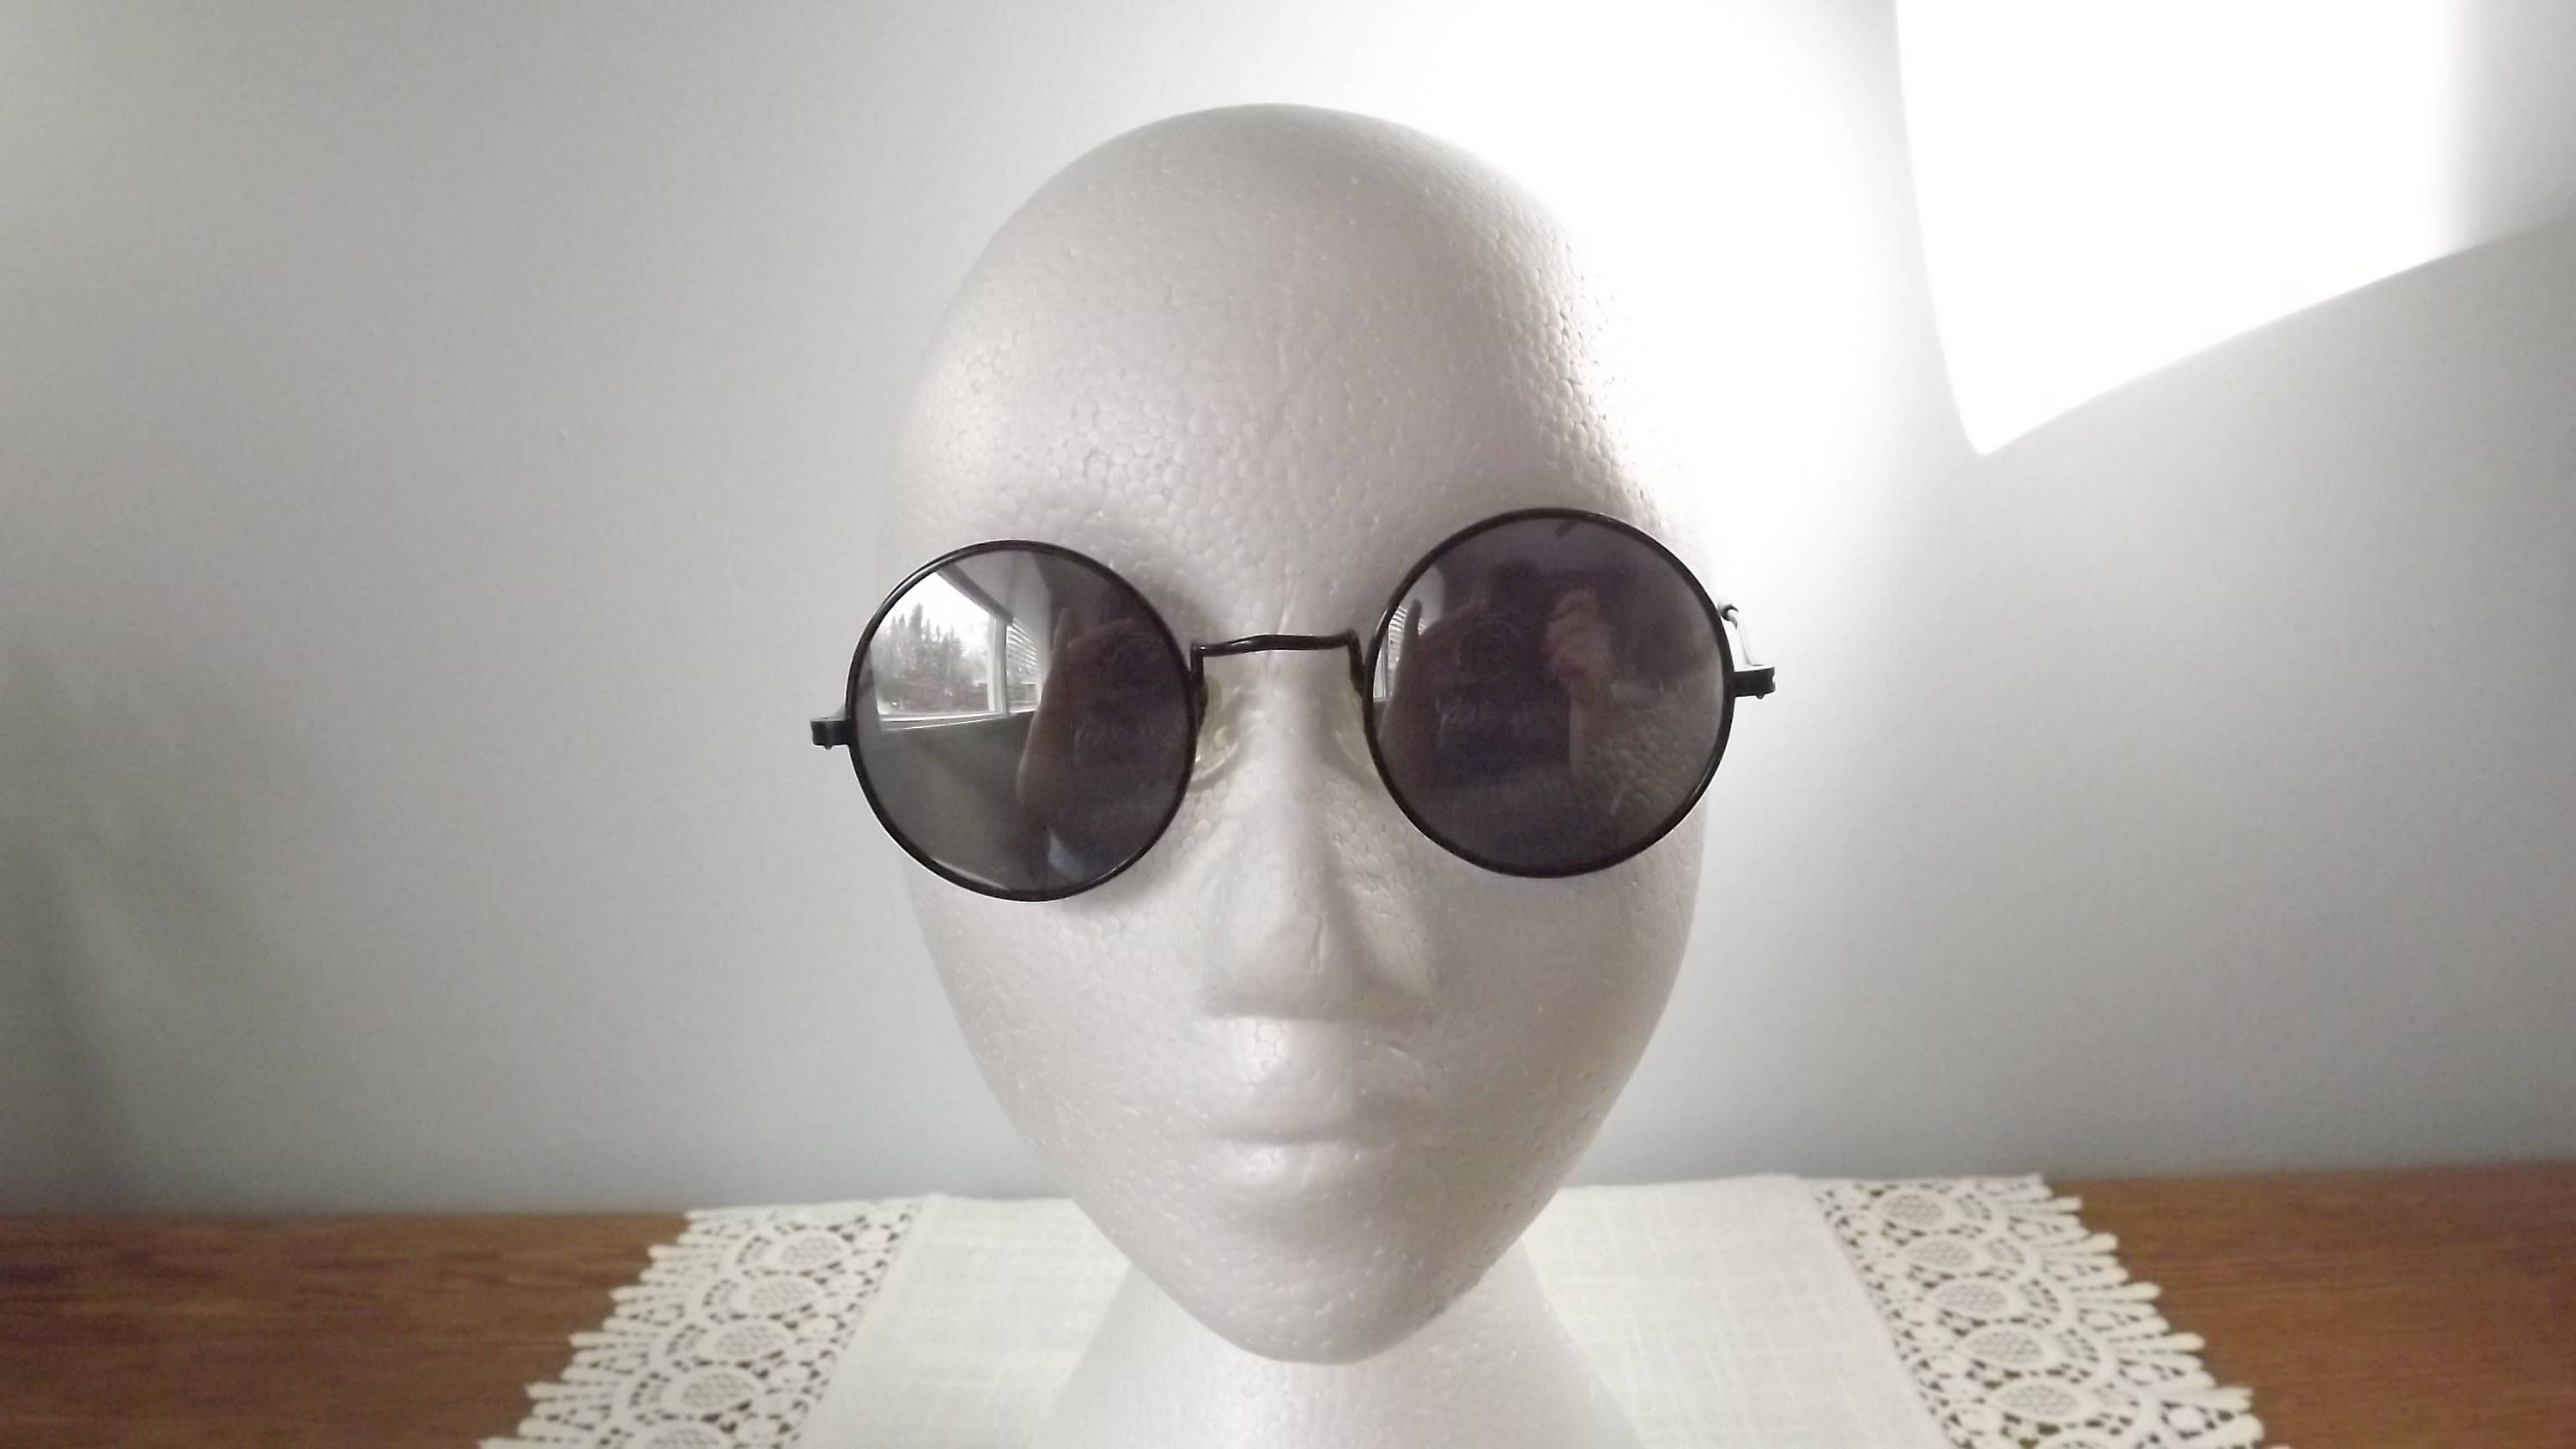 76ab4746e504 Vintage R.O.C. Be Like a Cool Dude Round Sunglasses